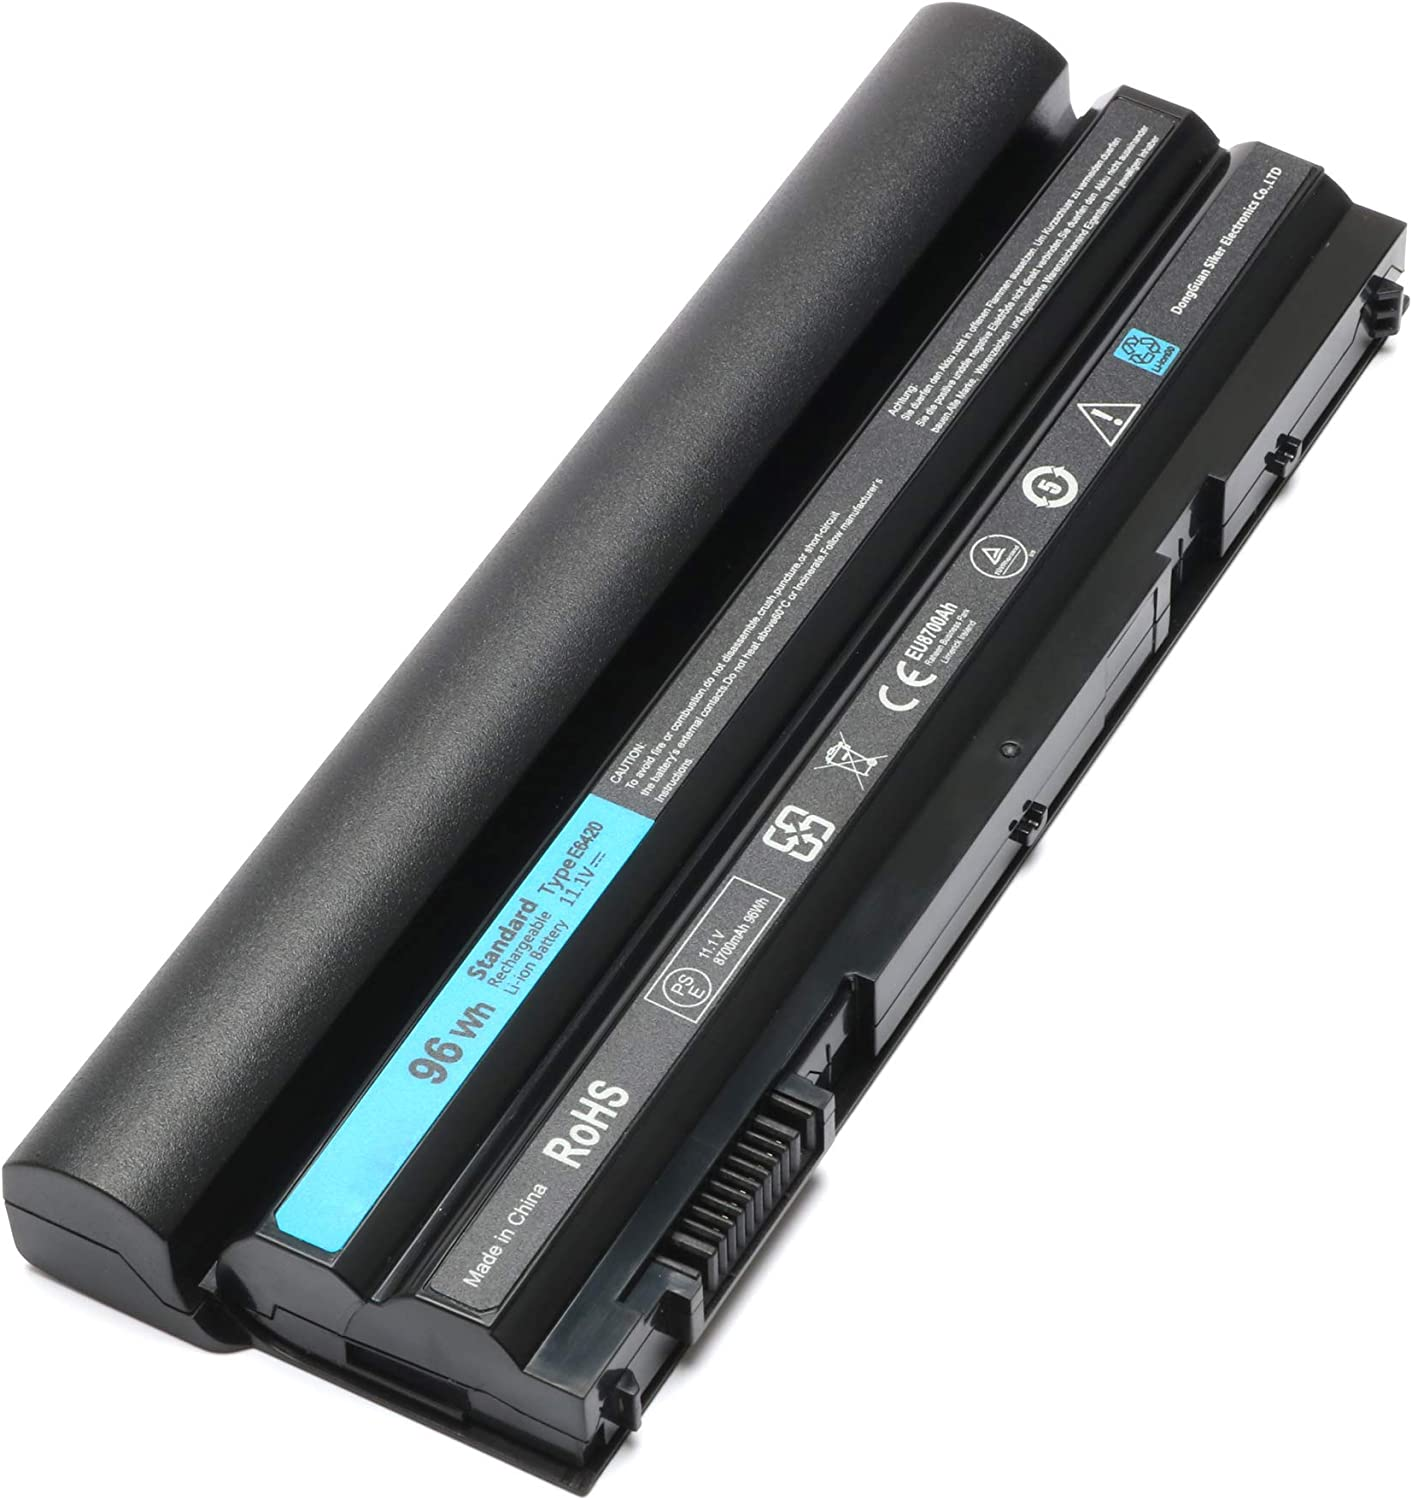 SIKER 9Cell 2P2MJ T54FJ New Laptop Battery for Dell Latitude E6420 E5420 E5430 E5520 E5530 E6530 Compatible P/N: 2P2MJ T54FJ 312-1325 312-1165 M5Y0X PRV1Y